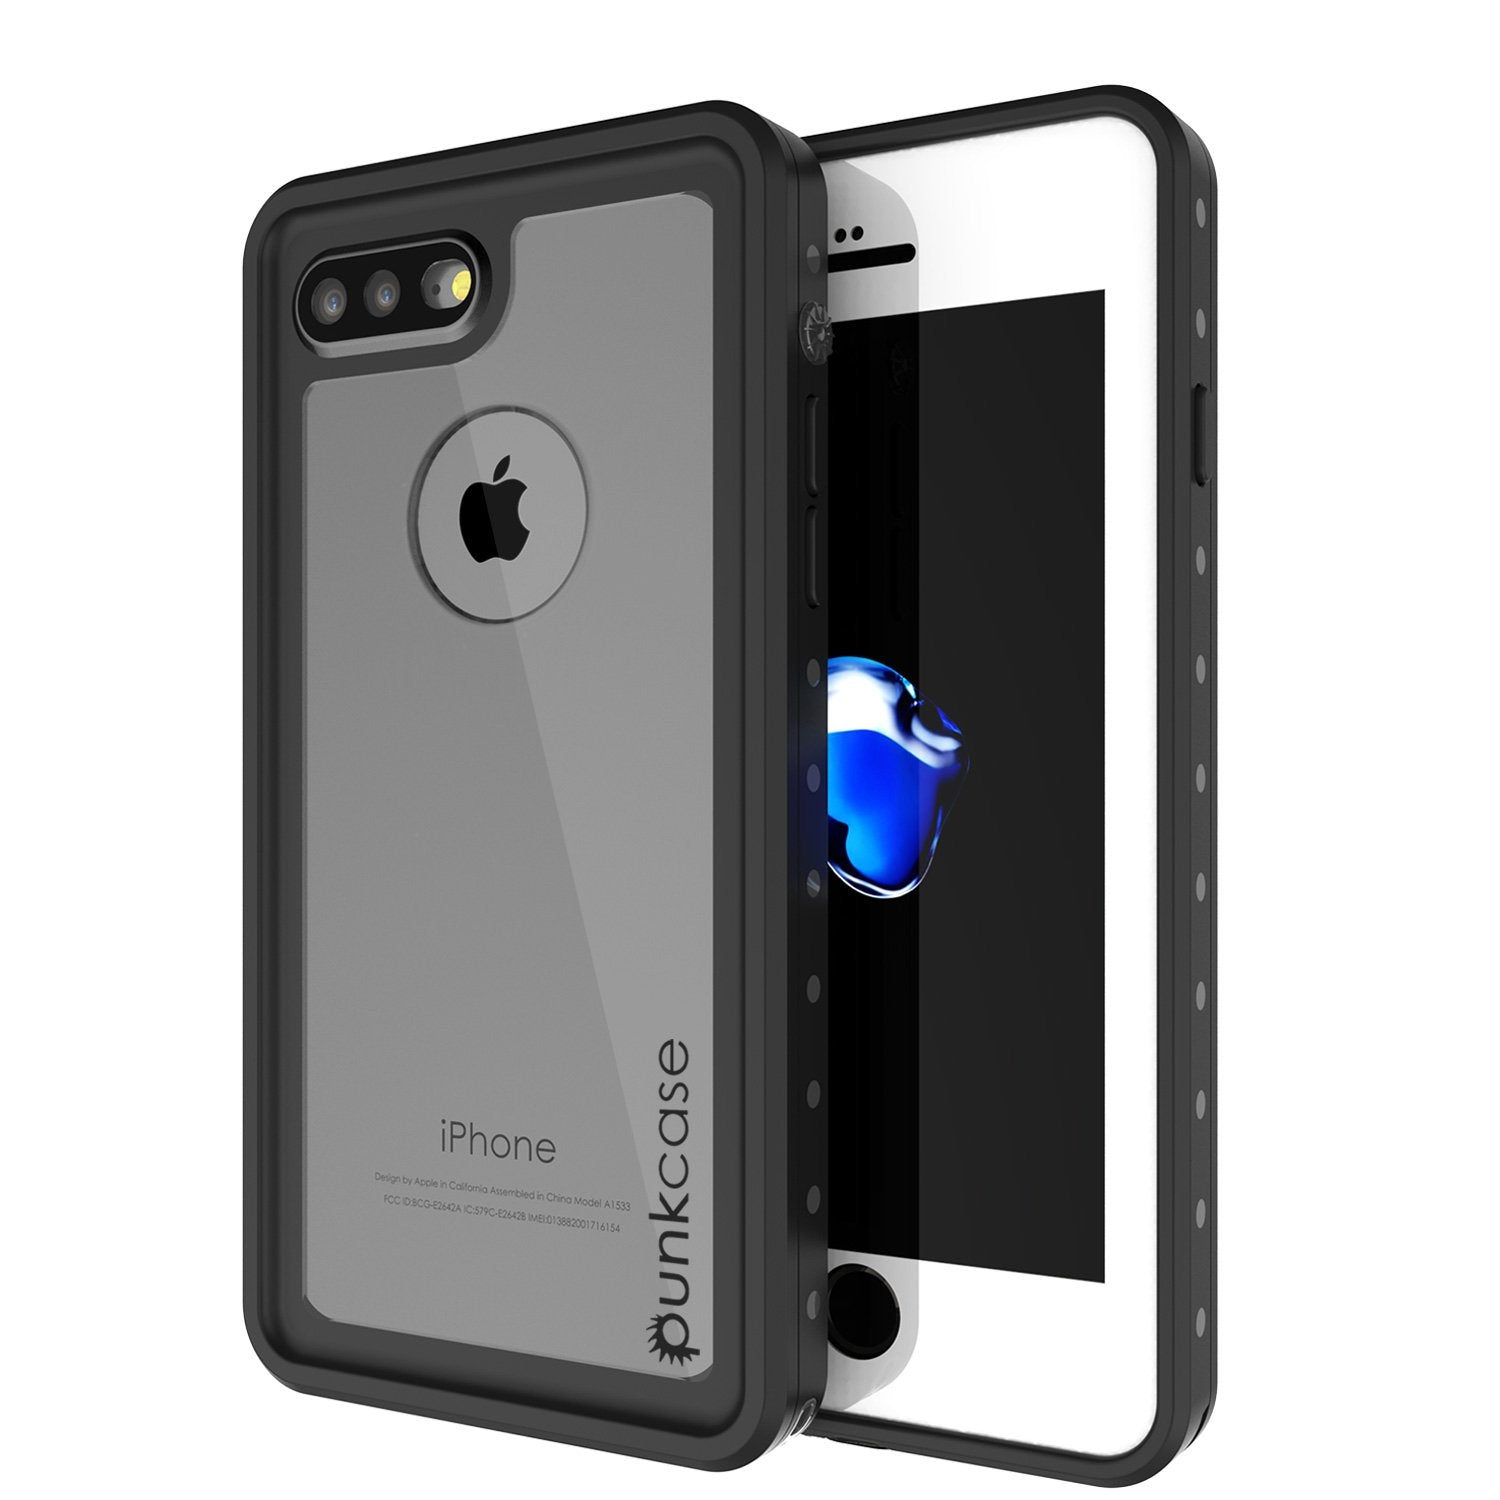 outlet store 7b5fc a01ac iPhone 8+ Plus Waterproof IP68 Case, Punkcase [Clear] [StudStar Series]  [Slim Fit] [Dirtproof]